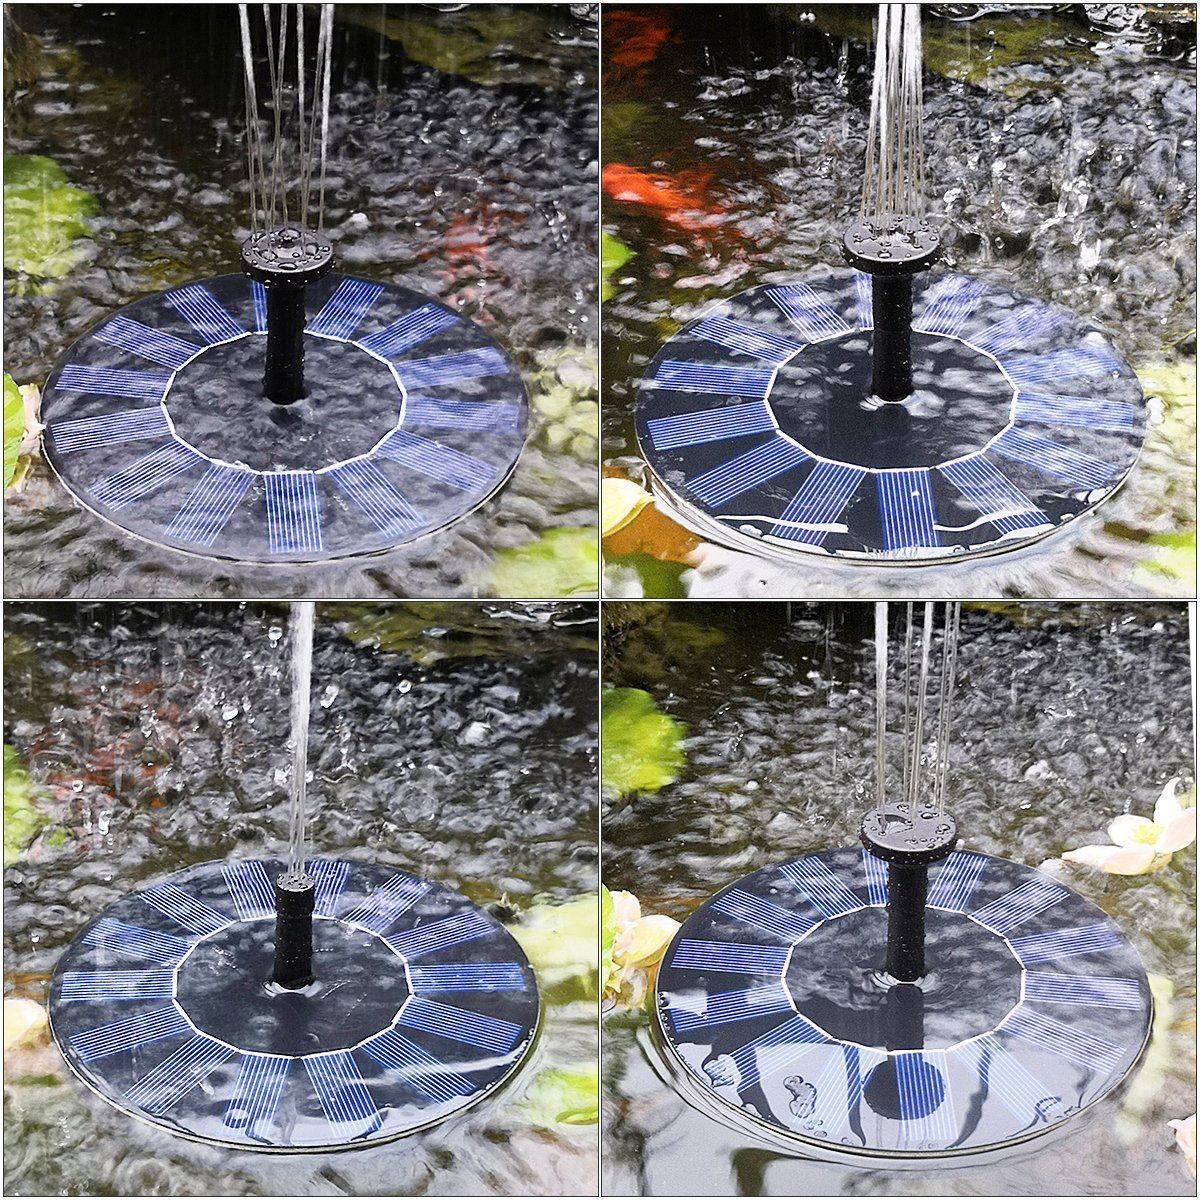 HOPPIC Solar Fountain Free Standing Floating Solar Water Pump with Different Water Patterns for Birdbath